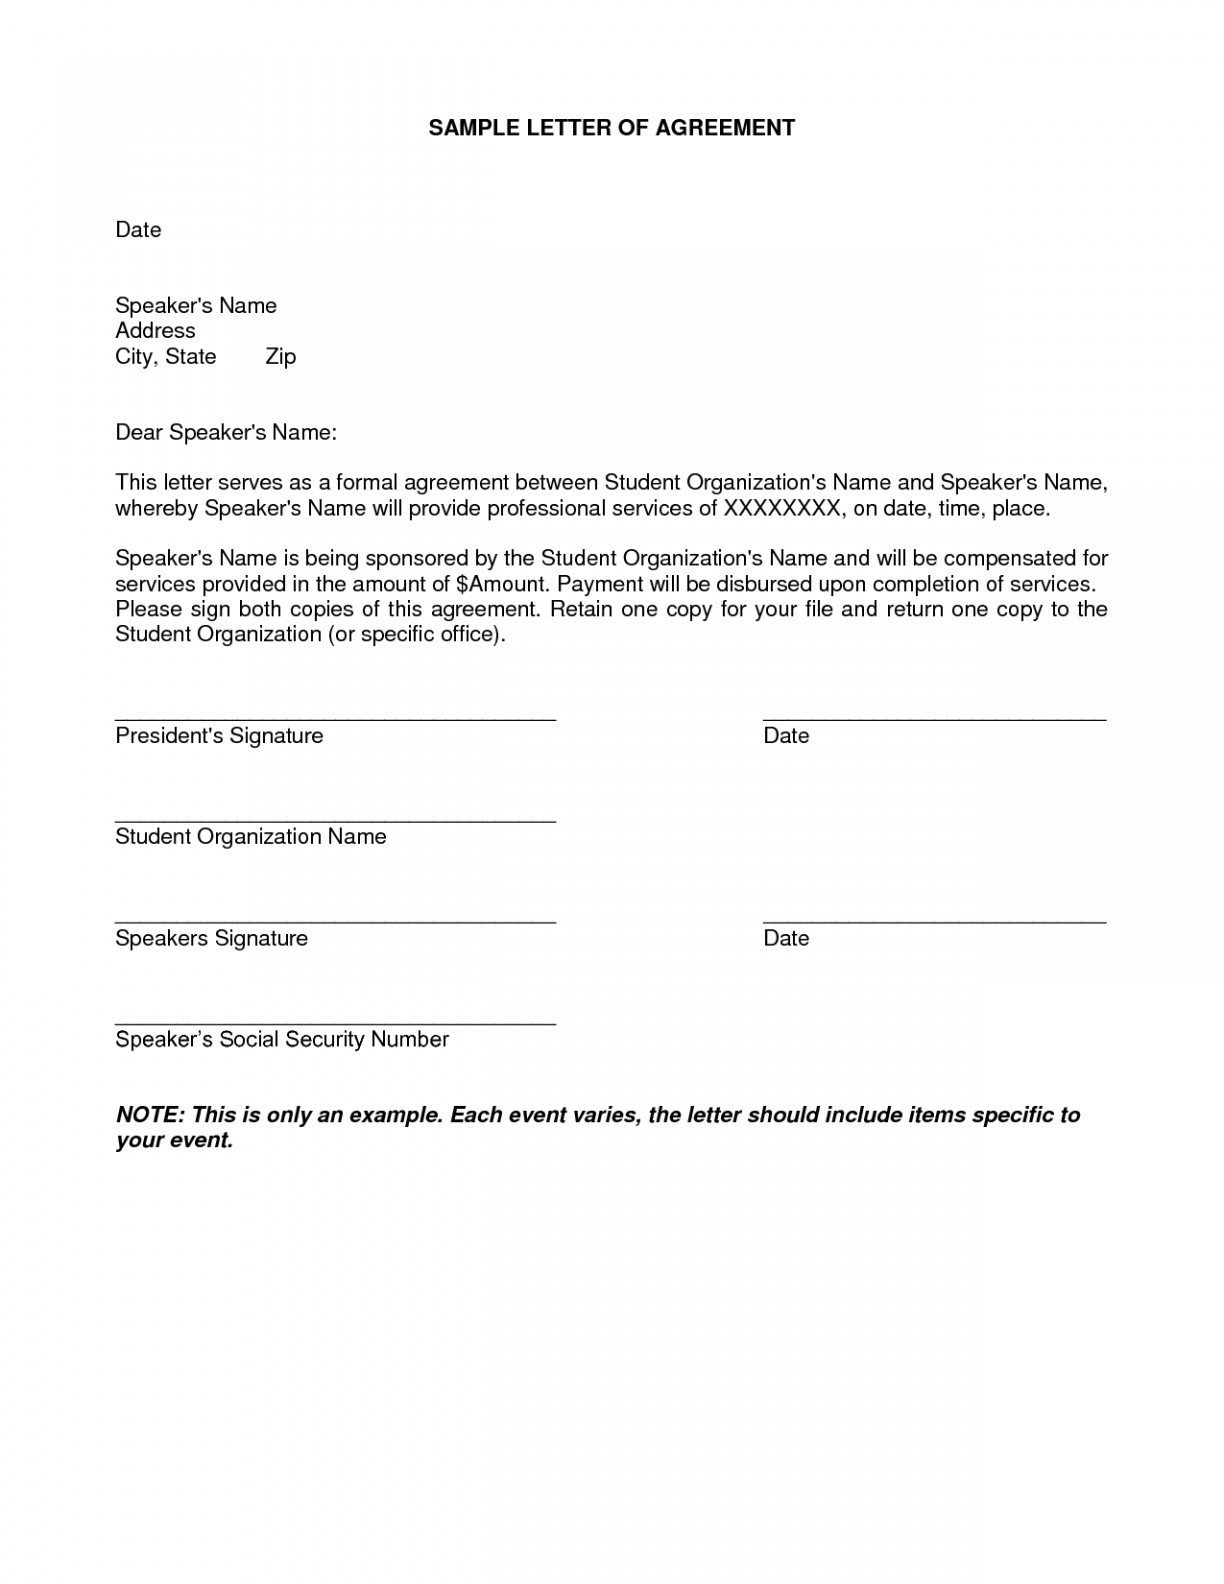 Repayment Agreement Letter Template - Payment Agreement Letter format New Undertaking Letter format